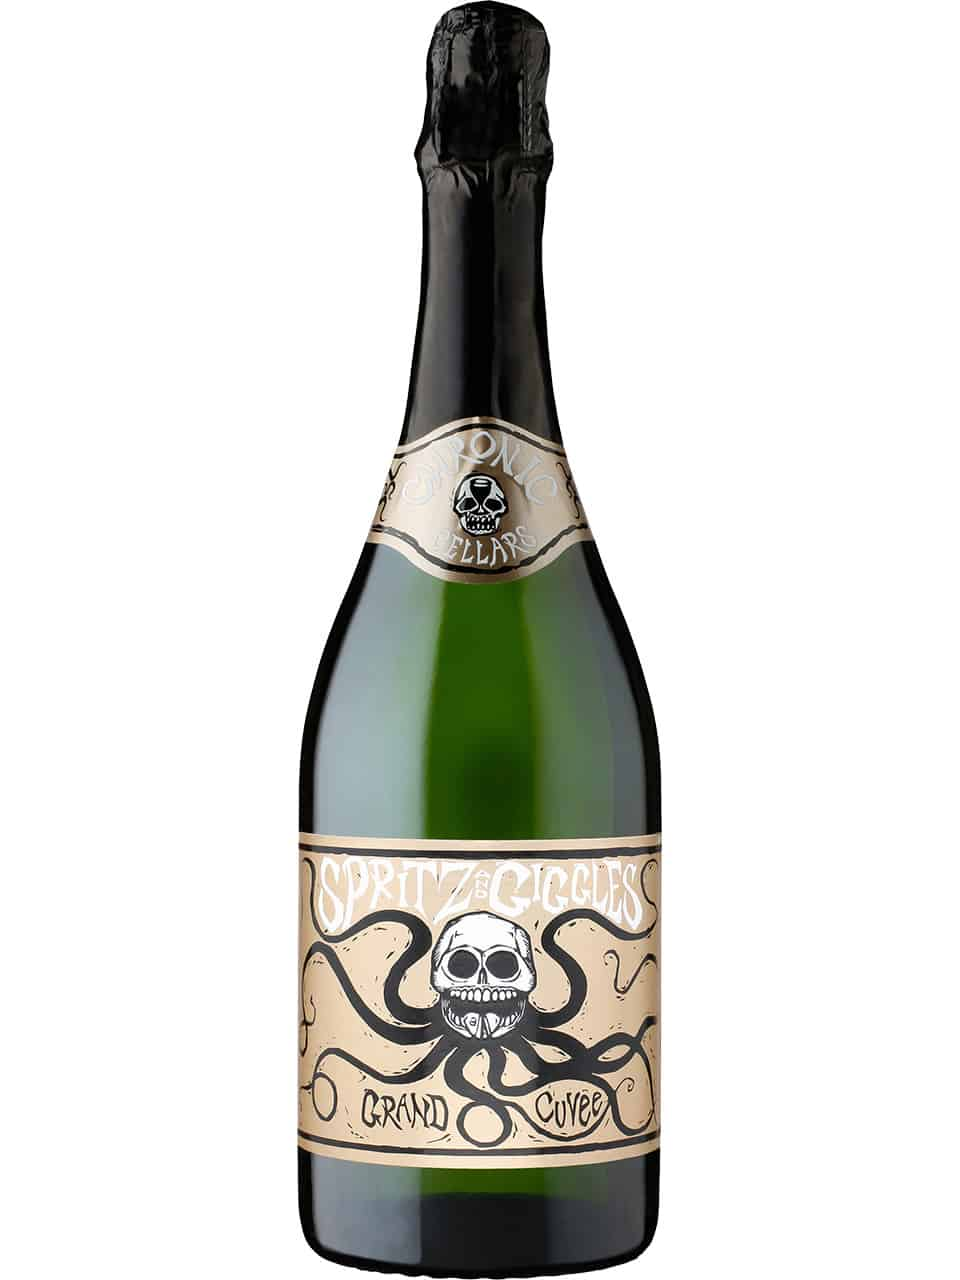 Chronic Cellars Spritz and Giggles Sparkling